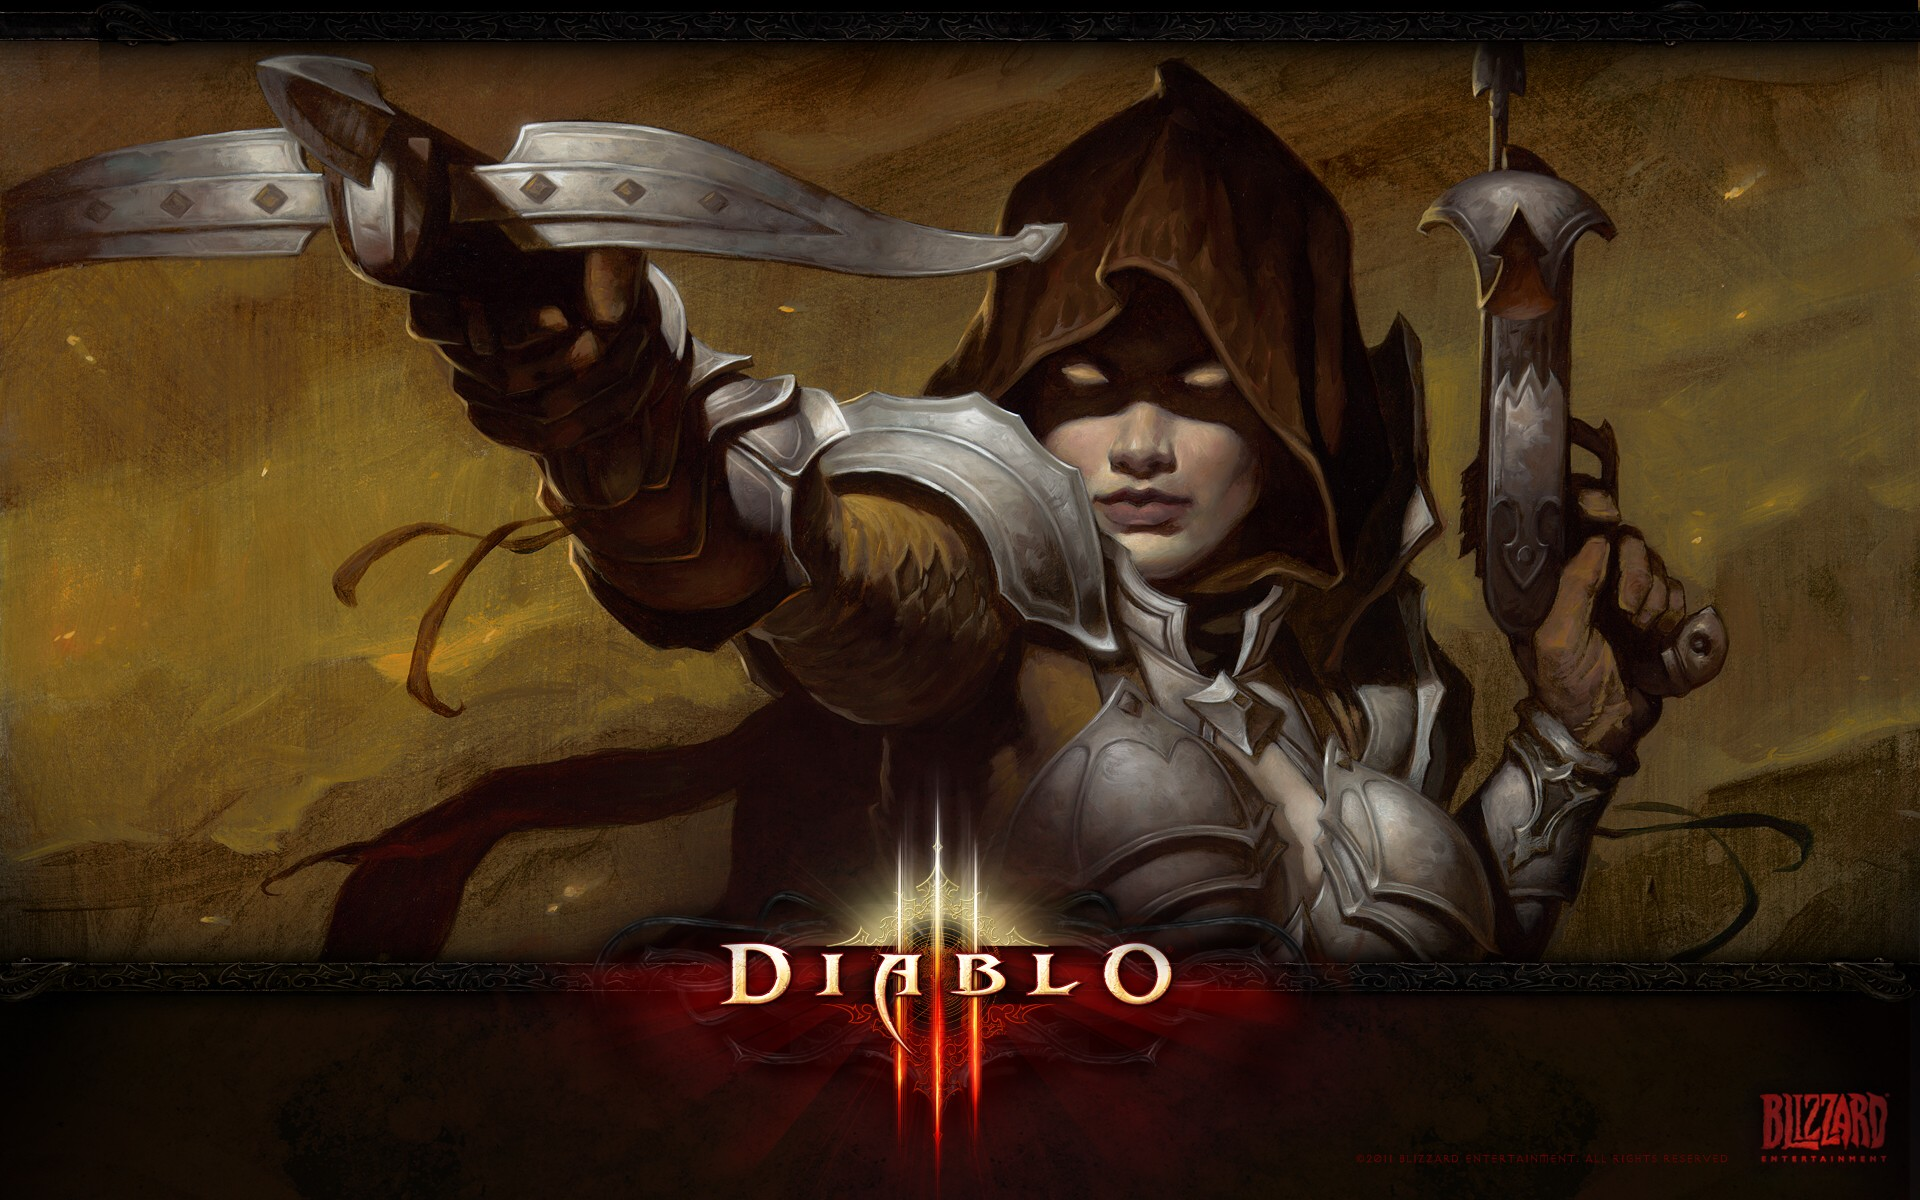 Naked women of diablo wallpapers anime video